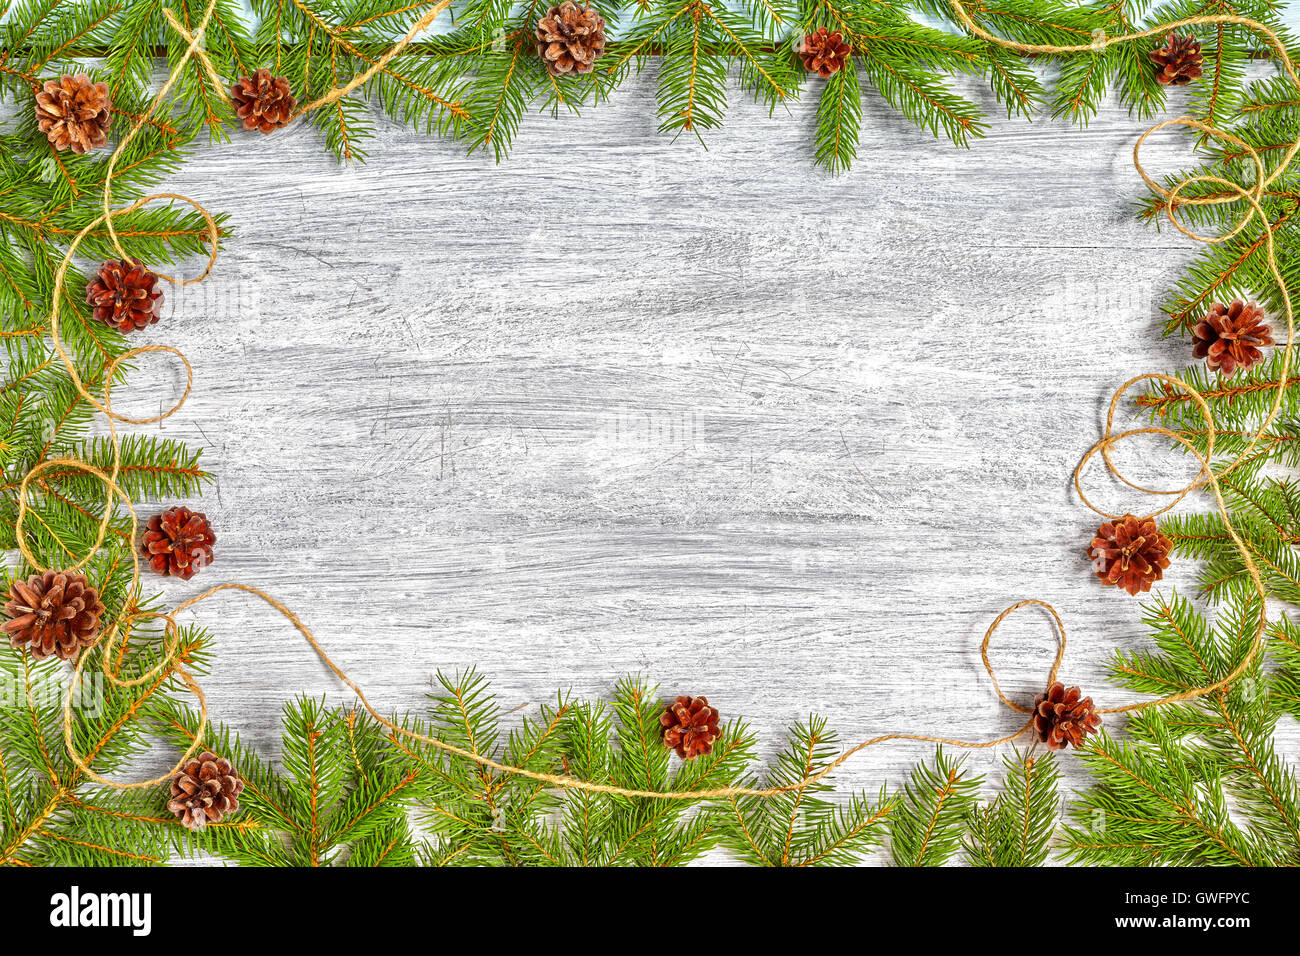 Christmas background, spruce branches frame with pine cones on a rustic wooden table, top view with copy space. - Stock Image